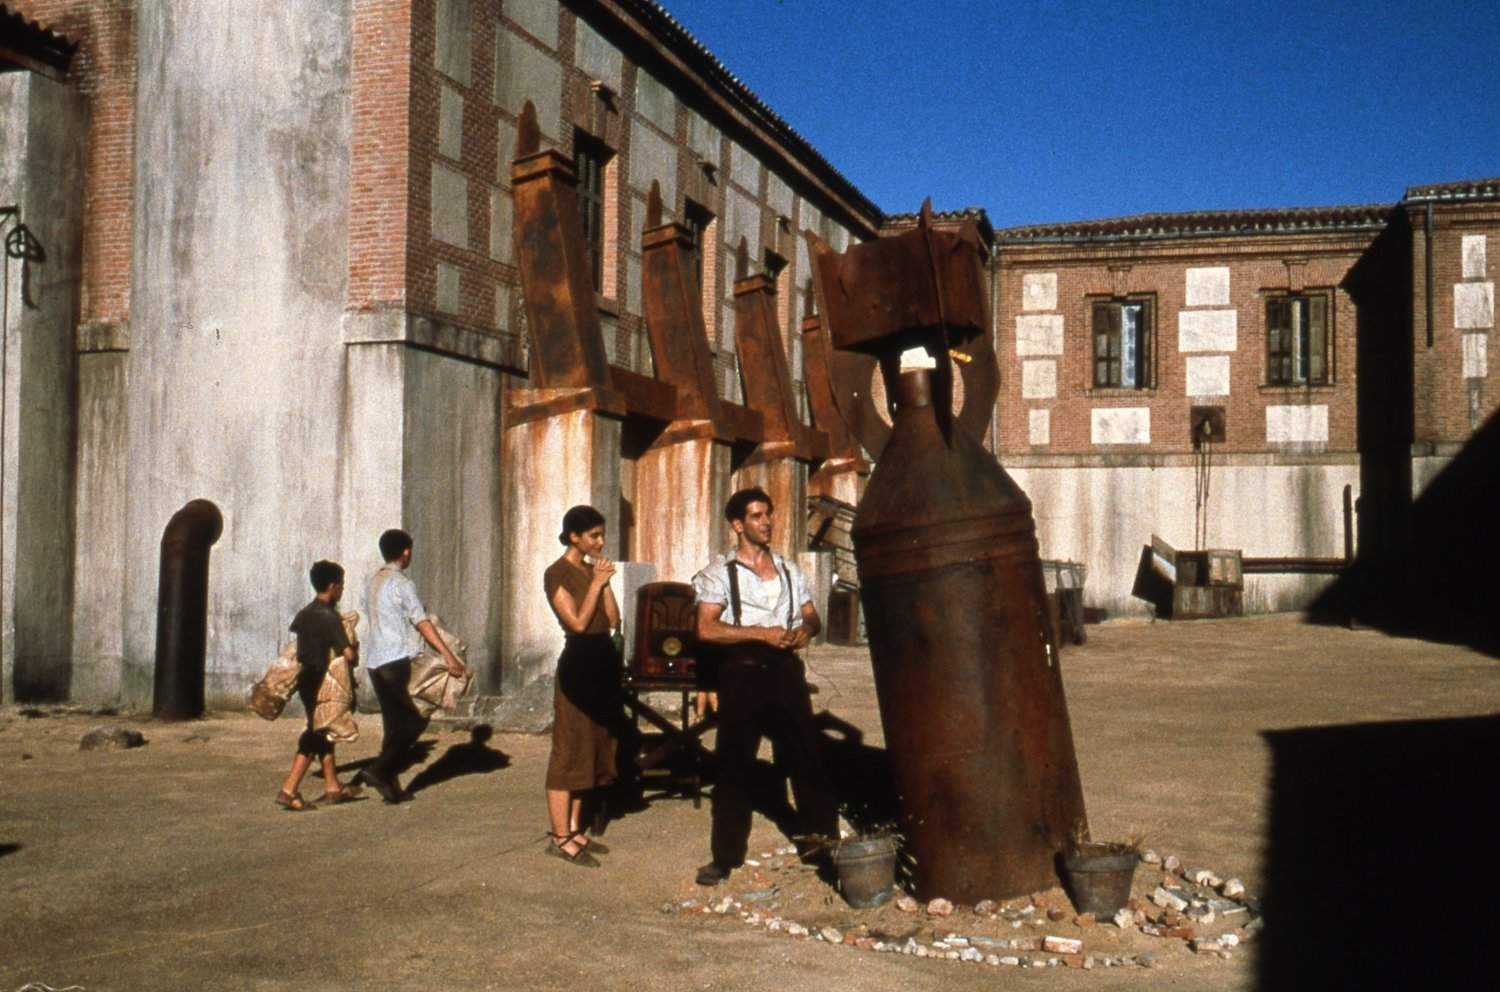 The unexploded bomb in the courtyard with Irene Visado and Eduardo Noriega standing next to it in The Devil's Backbone (2001)